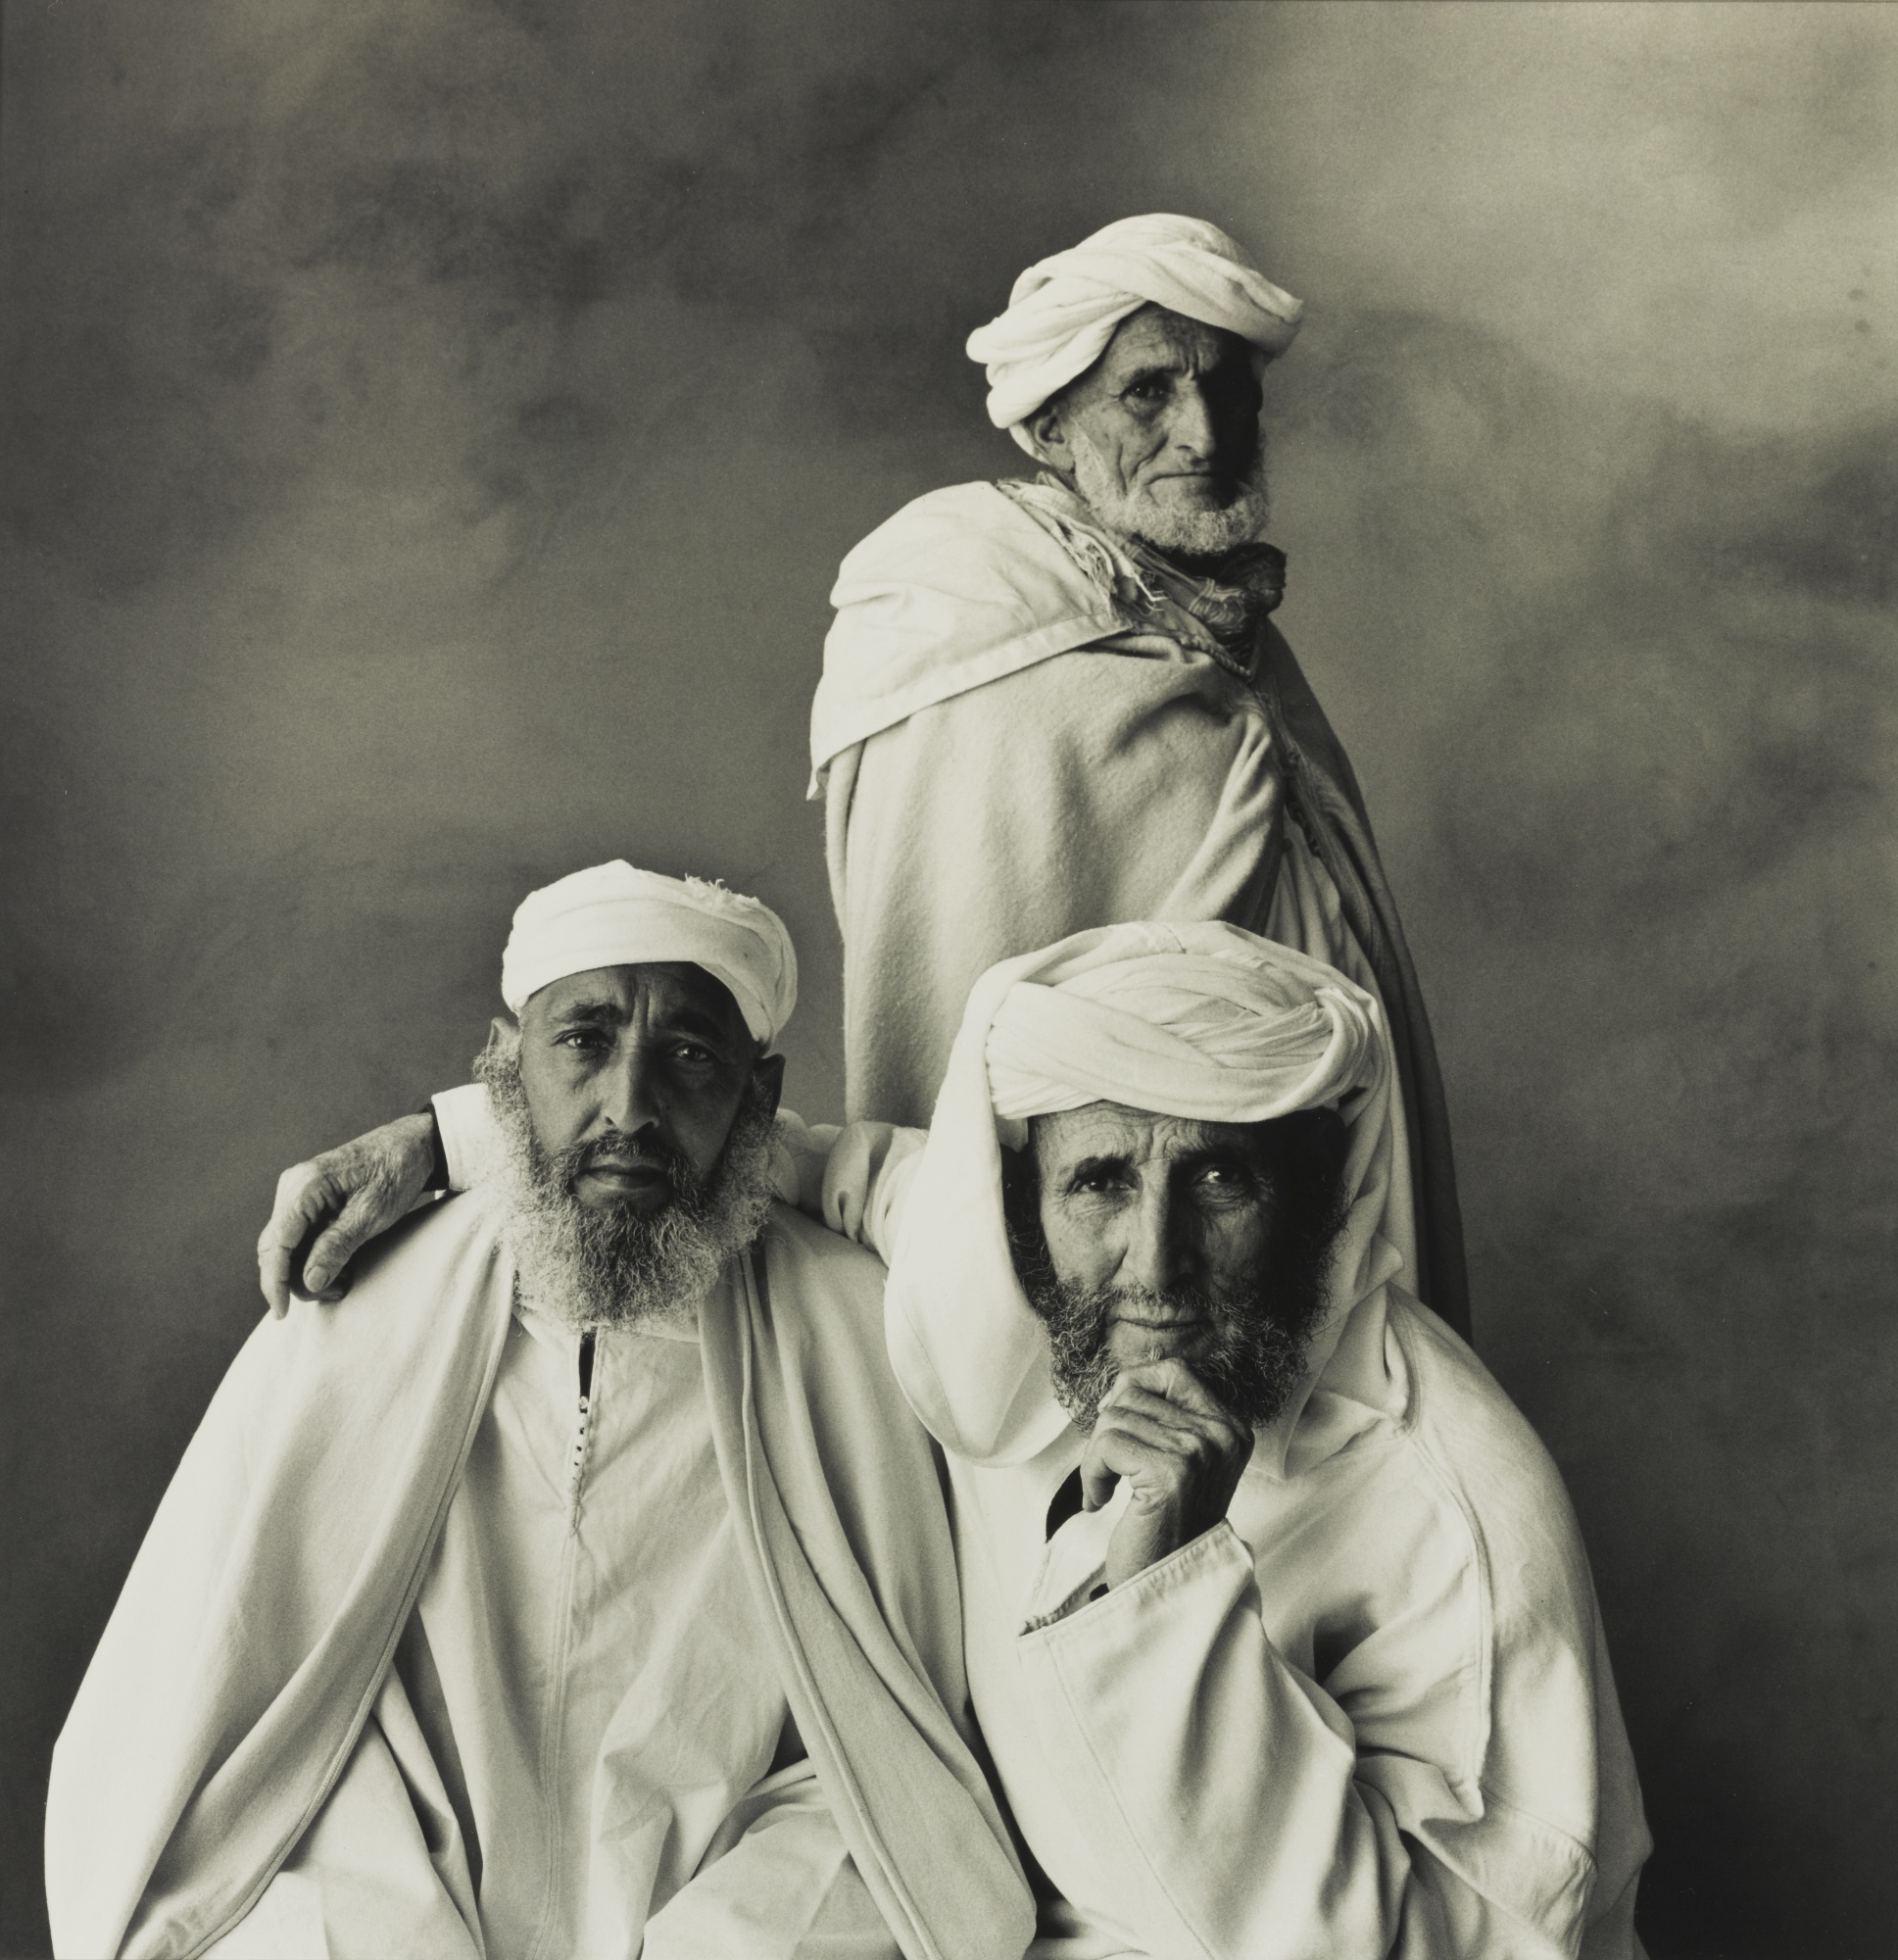 Irving Penn-Three Village Elders, Khenifra, Morocco (Three Arabs, Morocco)-1971